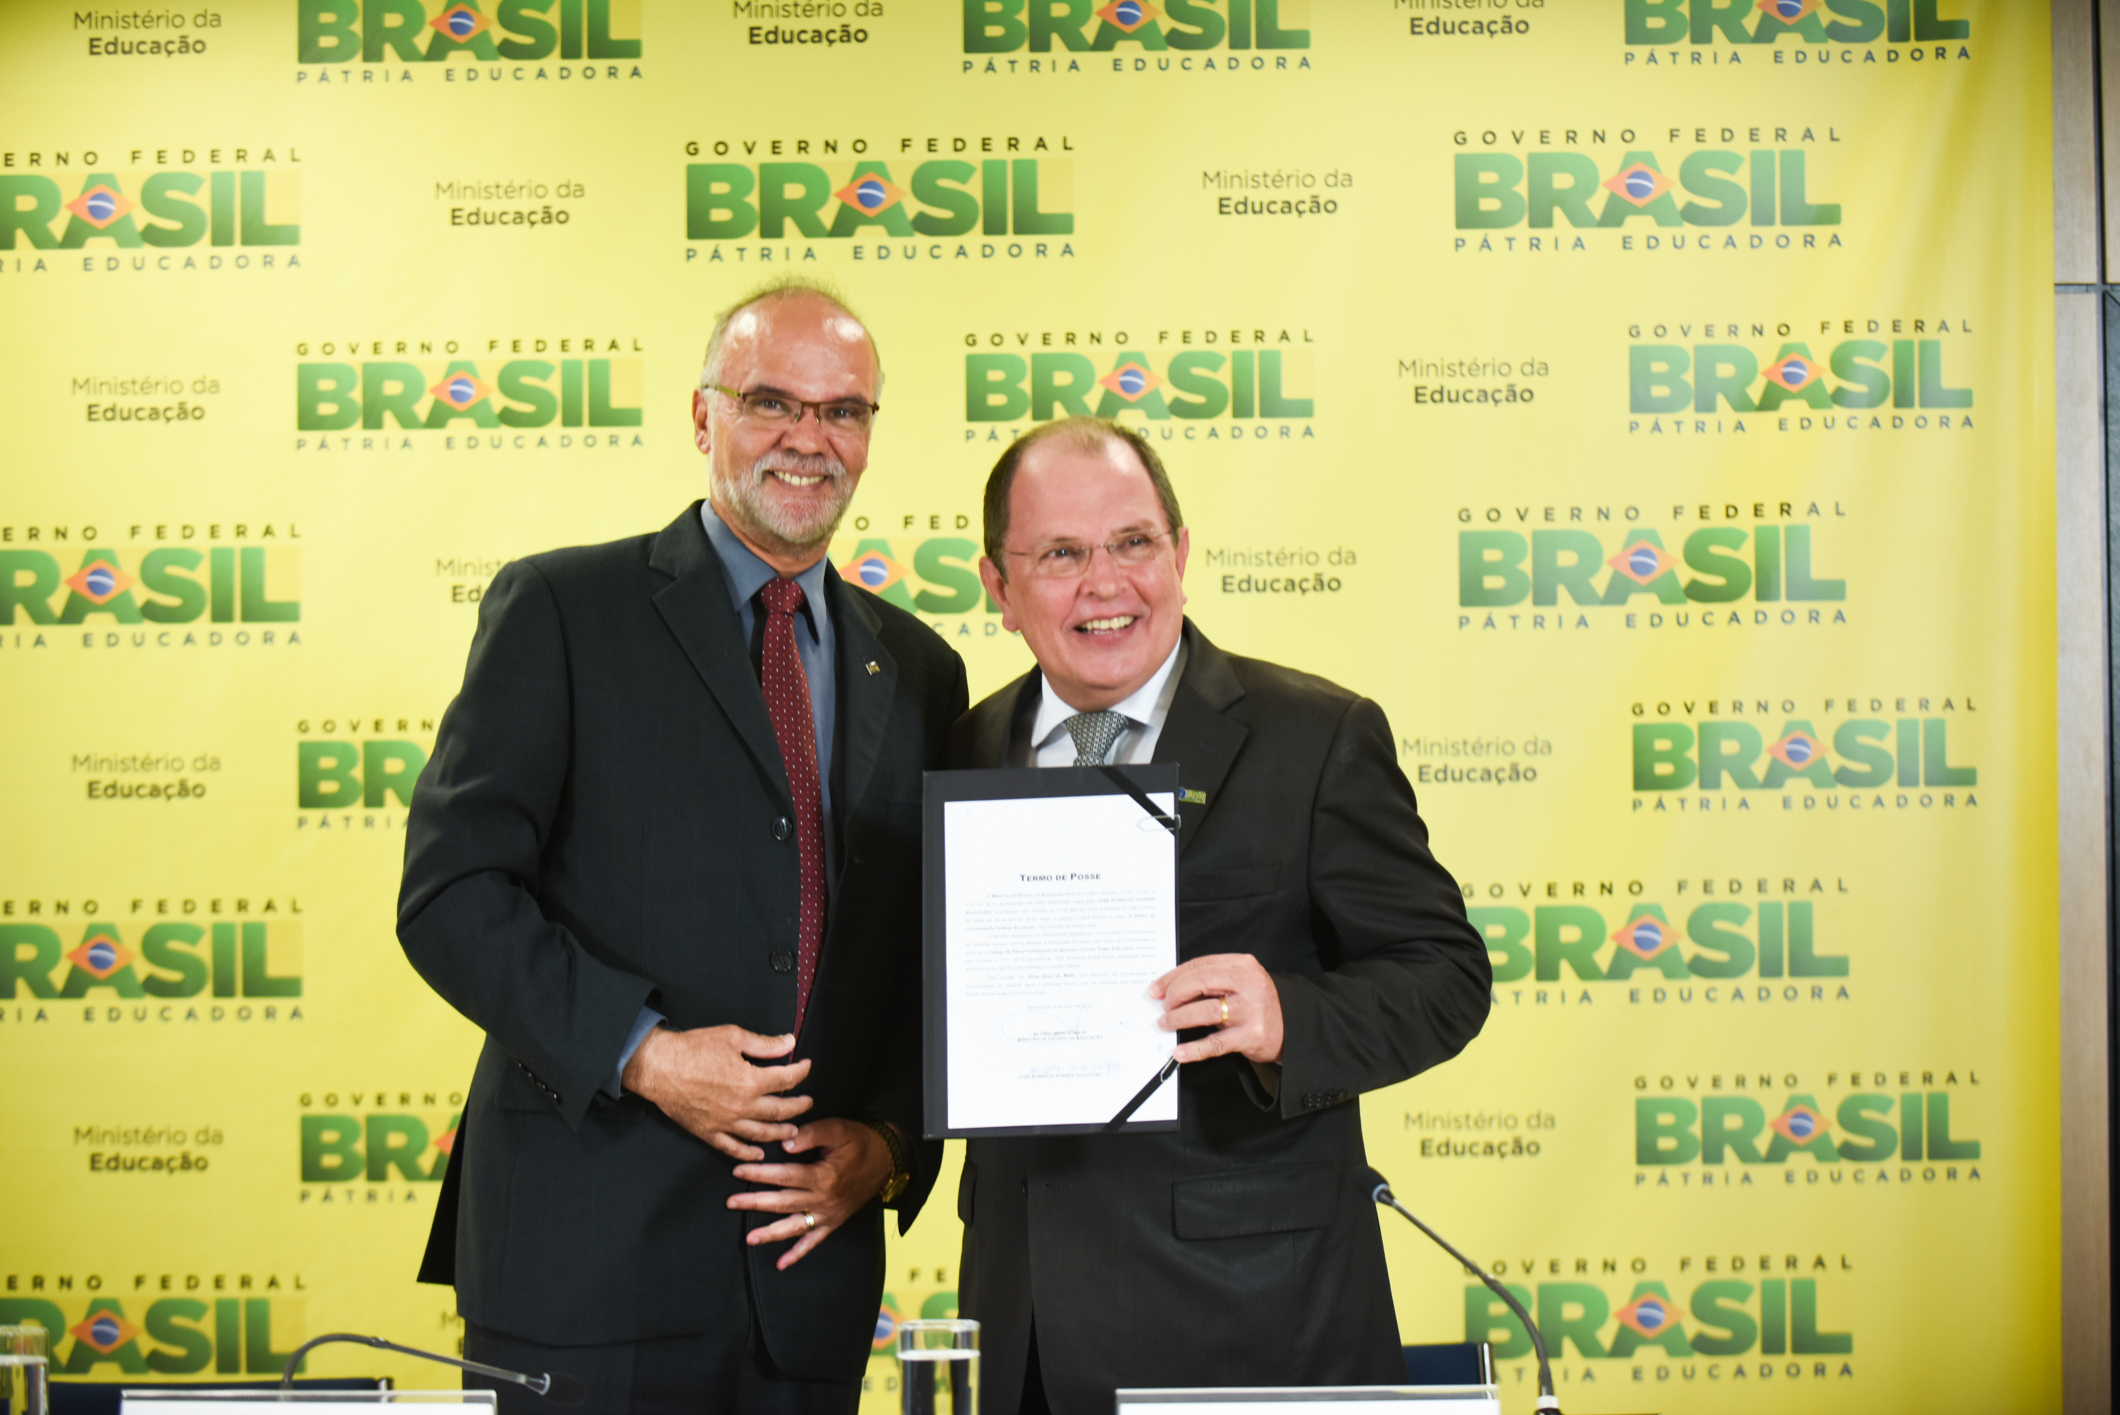 MEC reconduz reitor da Universidade Federal de Lavras (MG)